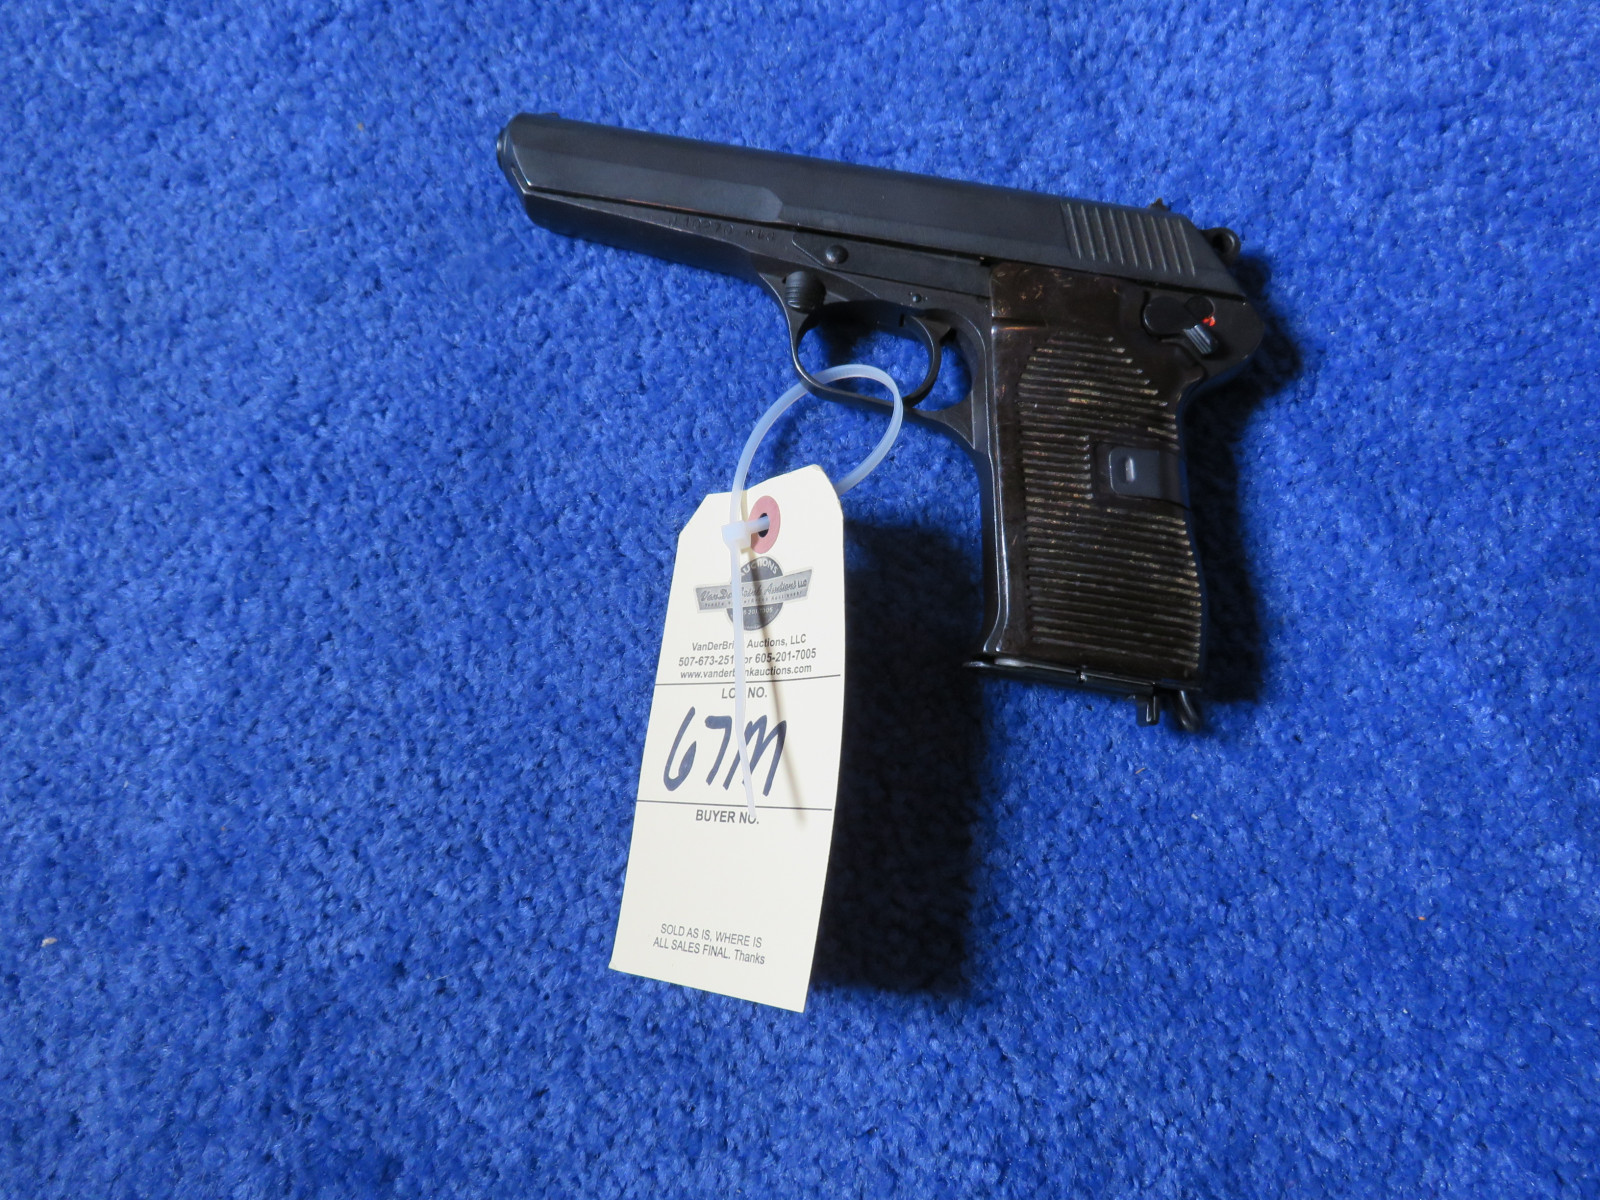 CZECH Republic 7.62x25 Semi Auto Handgun - Image 1